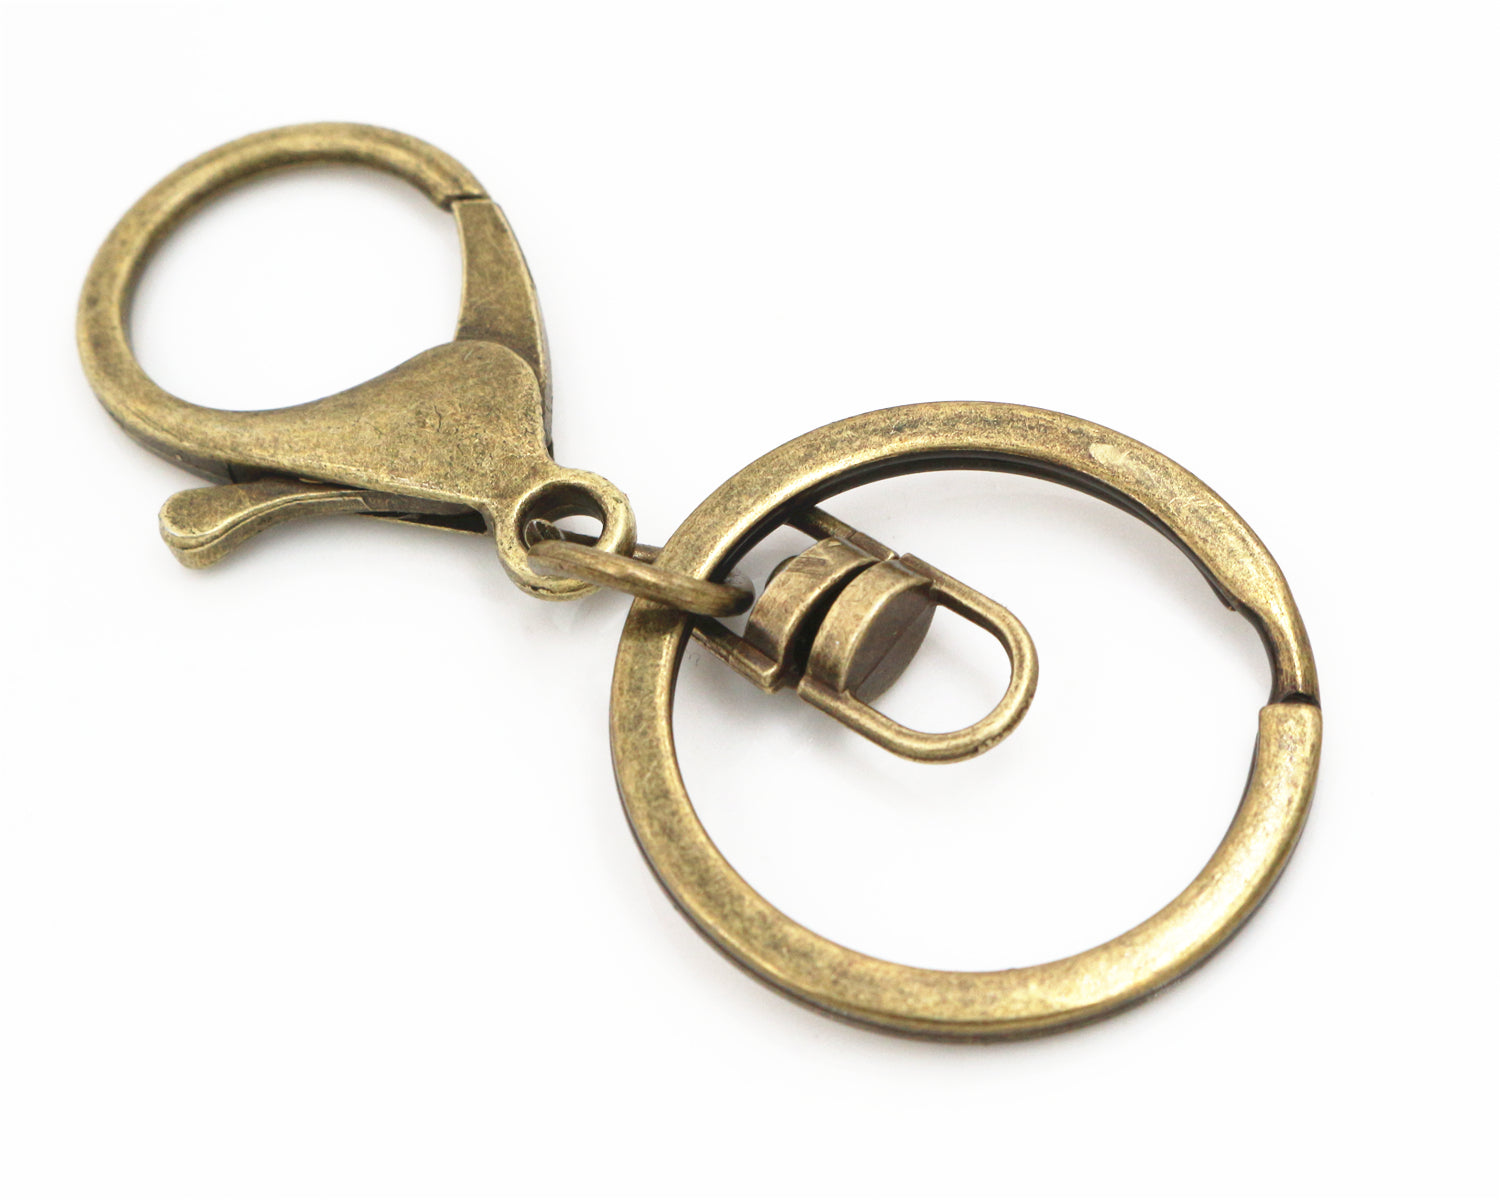 30mm 70mm Key Ring Long Popular Classic 6 Colors Plated Lobster Clasp Key Hook Chain Jewelry Making For Key-chain